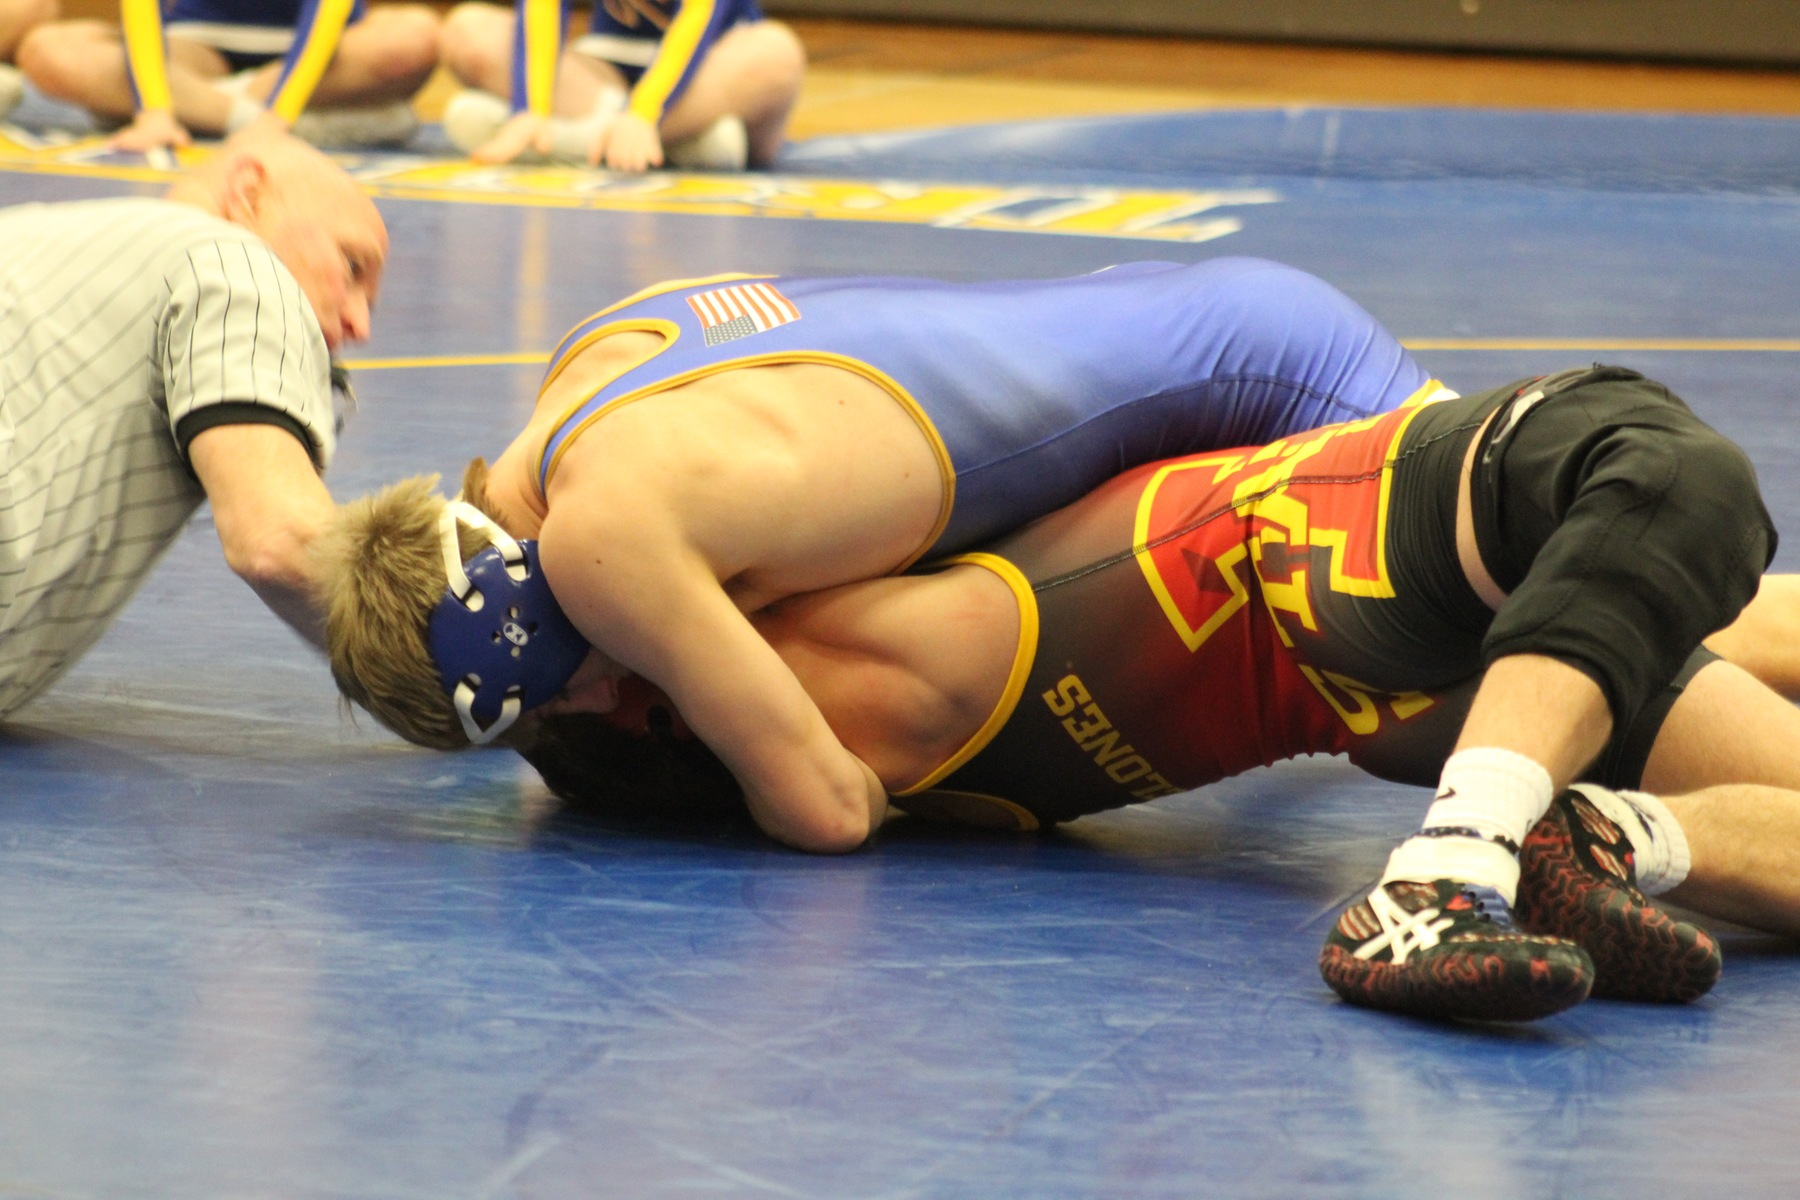 NIACC's Austin Anderly works for the fall against Iowa State's Sam Reyant in their 141-pound match Tuesday in the NIACC gym.